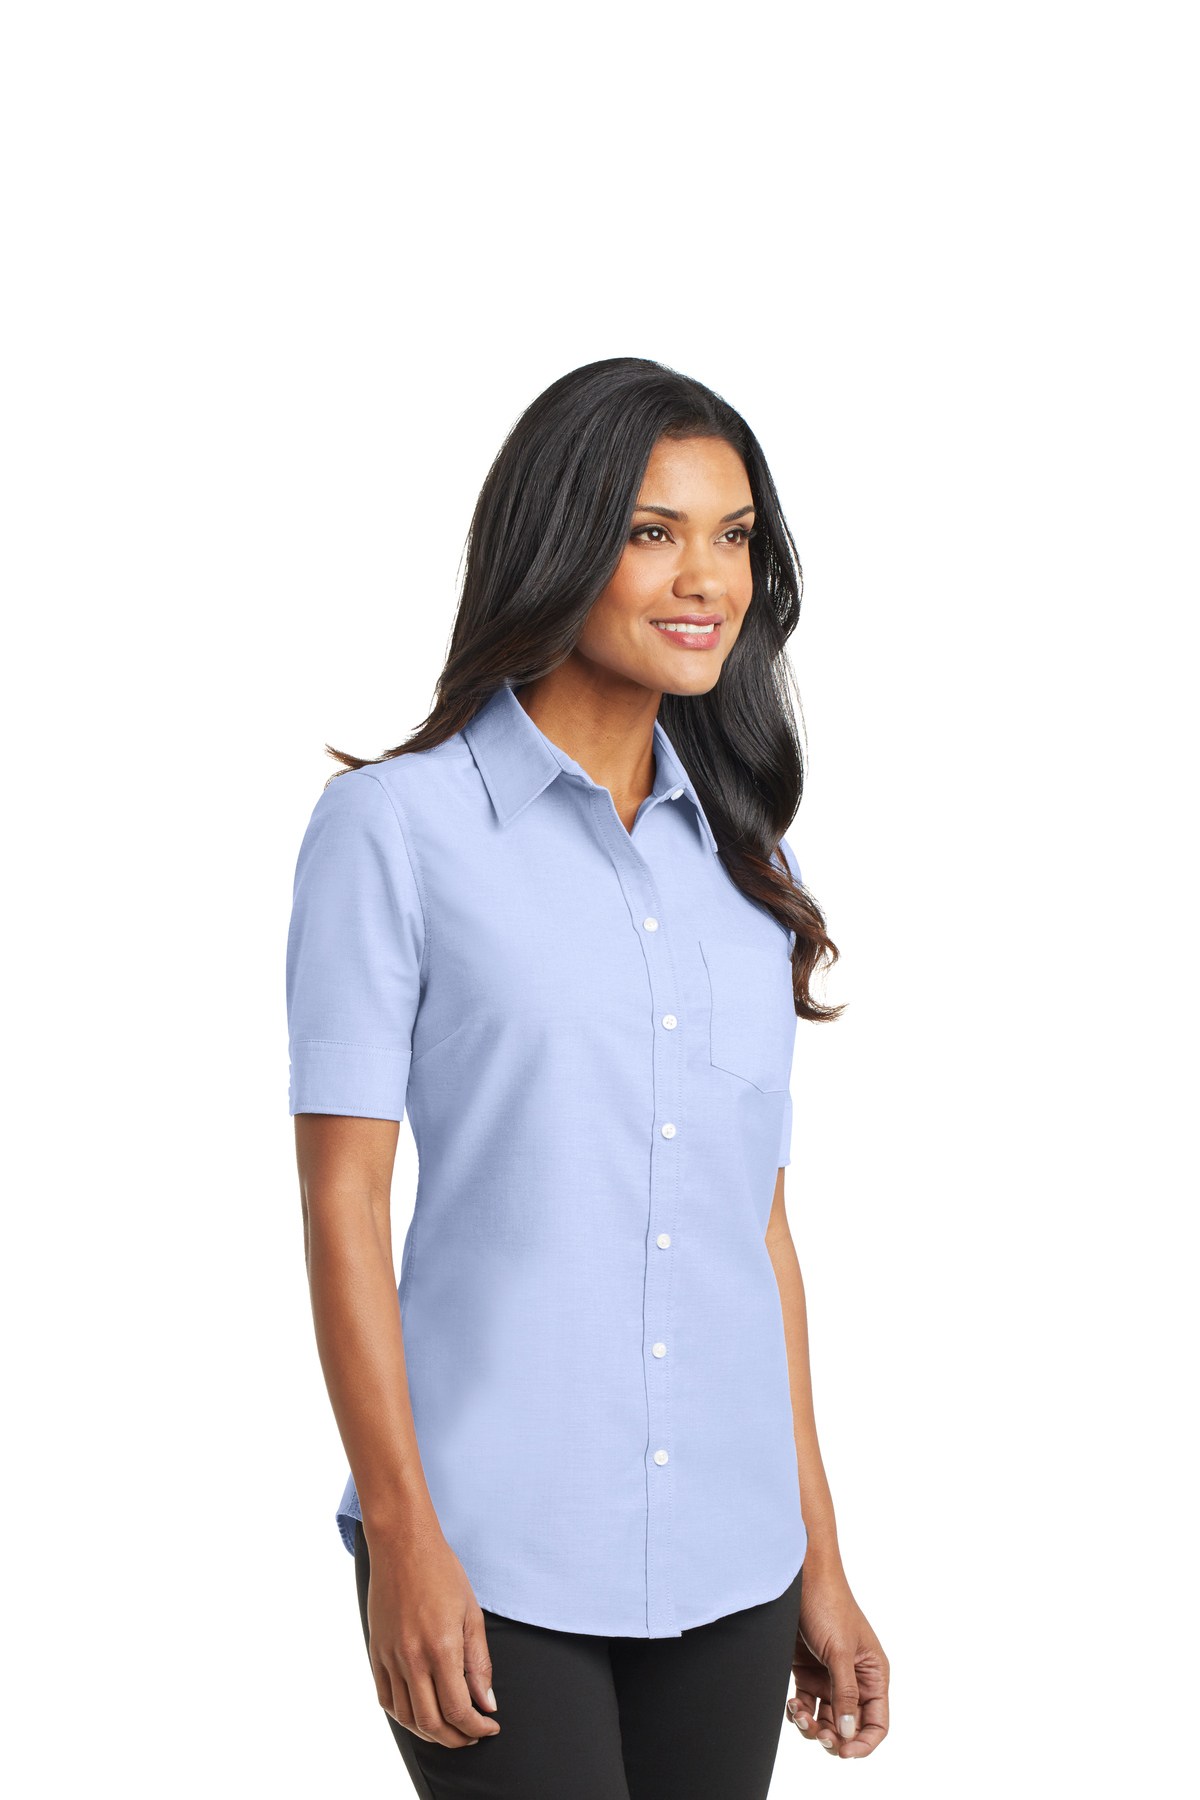 a3129151b ... Port Authority® Ladies Short Sleeve SuperPro™ Oxford Shirt. A maximum of  8 logos have been uploaded. Please remove a logo from My Logos to continue